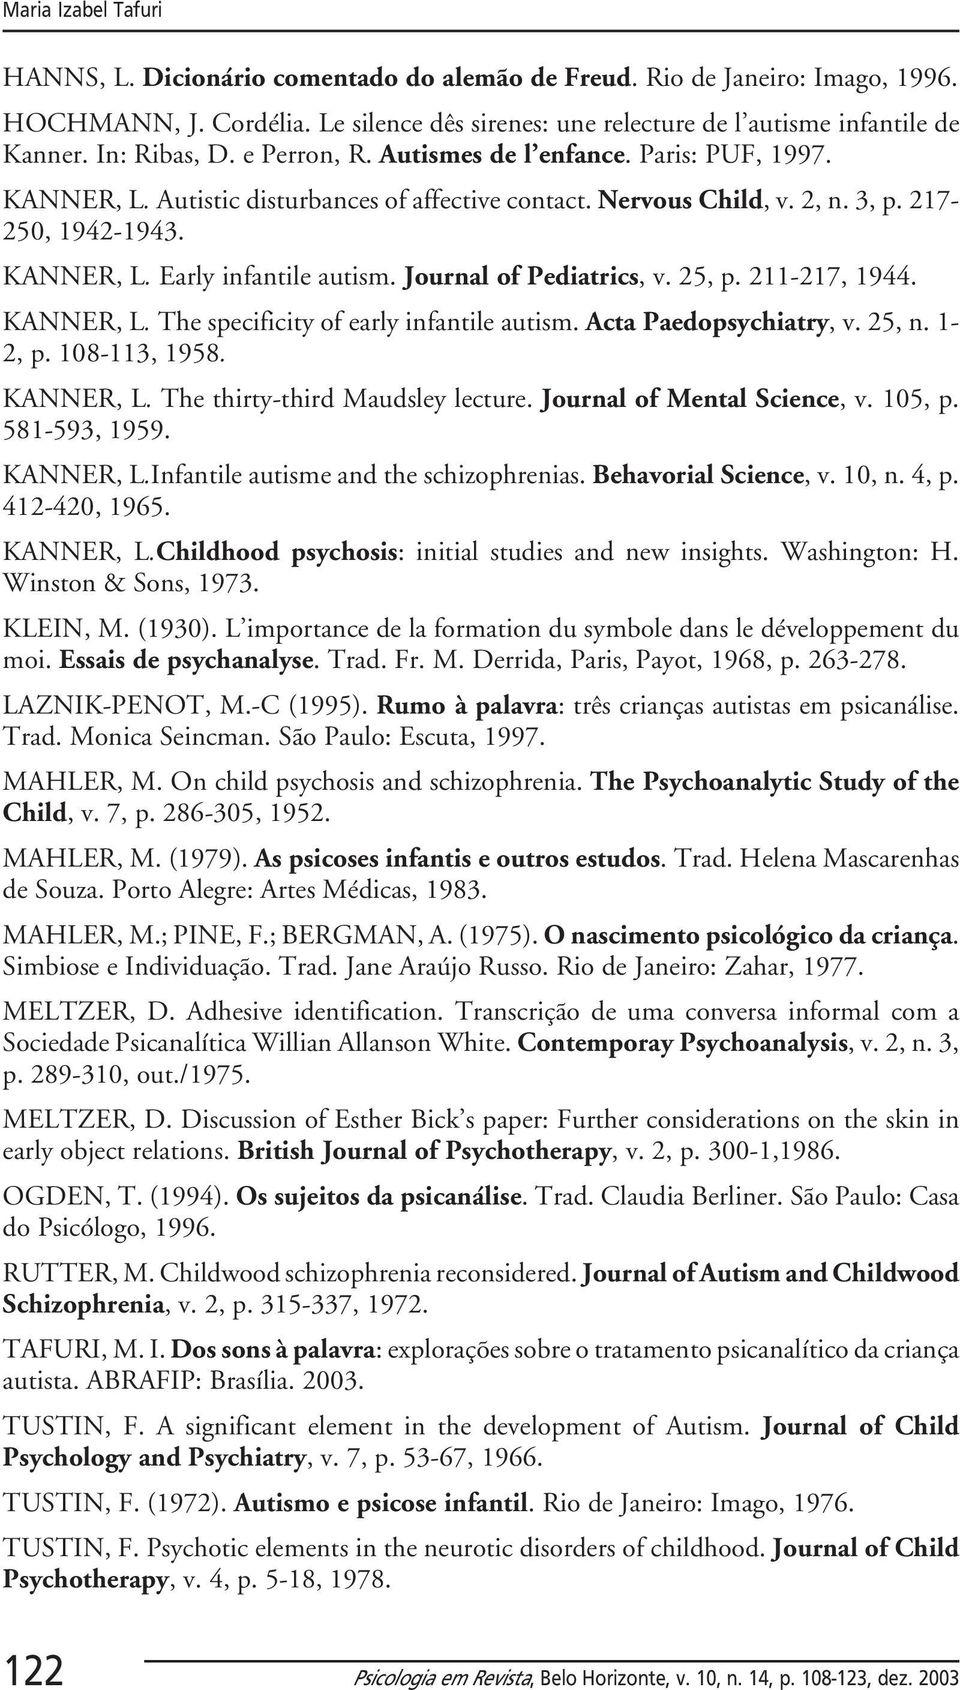 Journal of Pediatrics, v. 25, p. 211-217, 1944. KANNER, L. The specificity of early infantile autism. Acta Paedopsychiatry, v. 25, n. 1-2, p. 108-113, 1958. KANNER, L. The thirty-third Maudsley lecture.